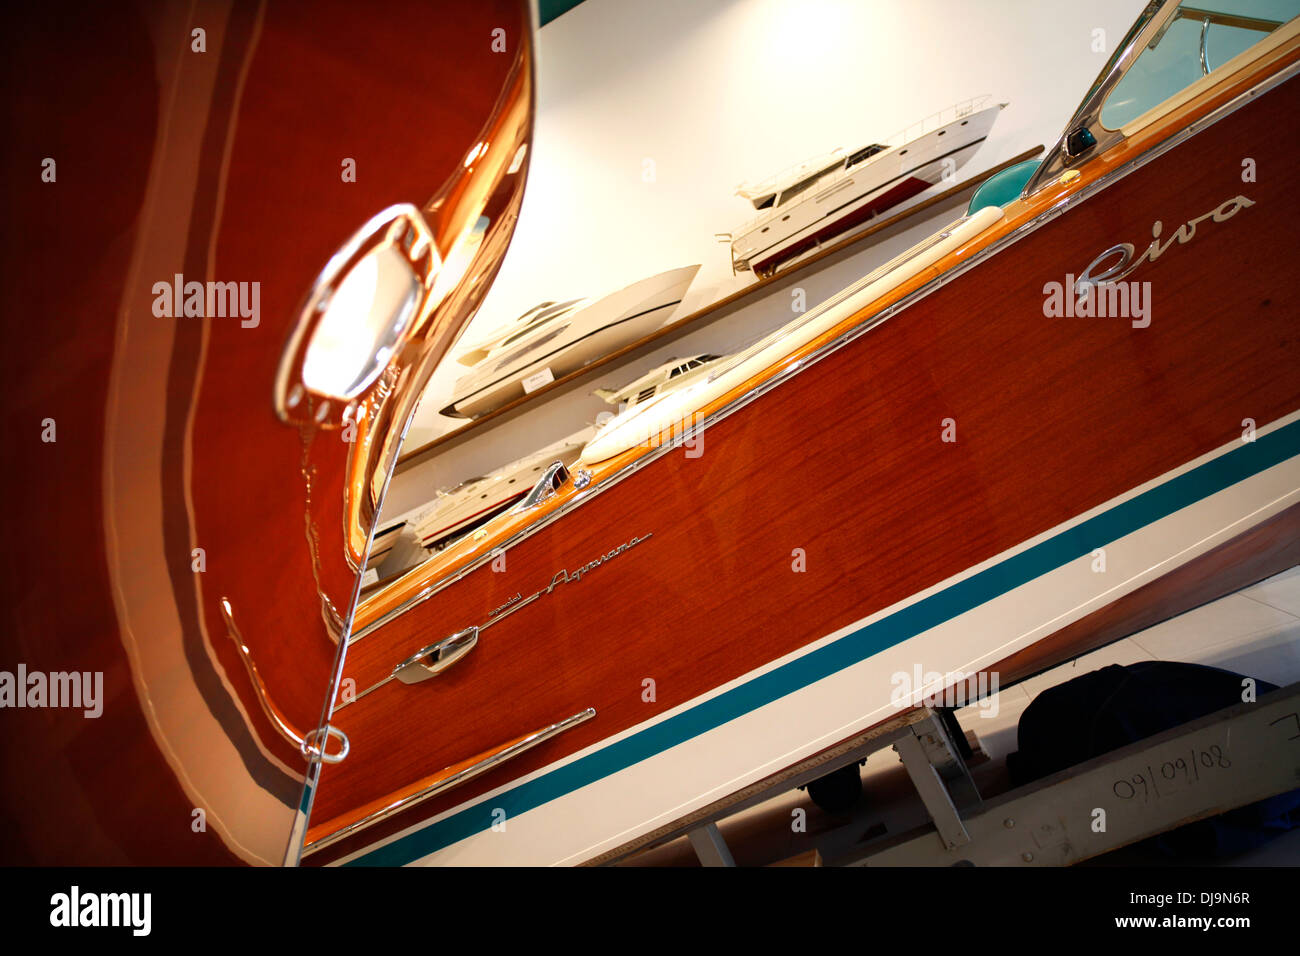 Classic Riva yachts on display at the factory on Lake Iseo at Sarnico, Italy. - Stock Image